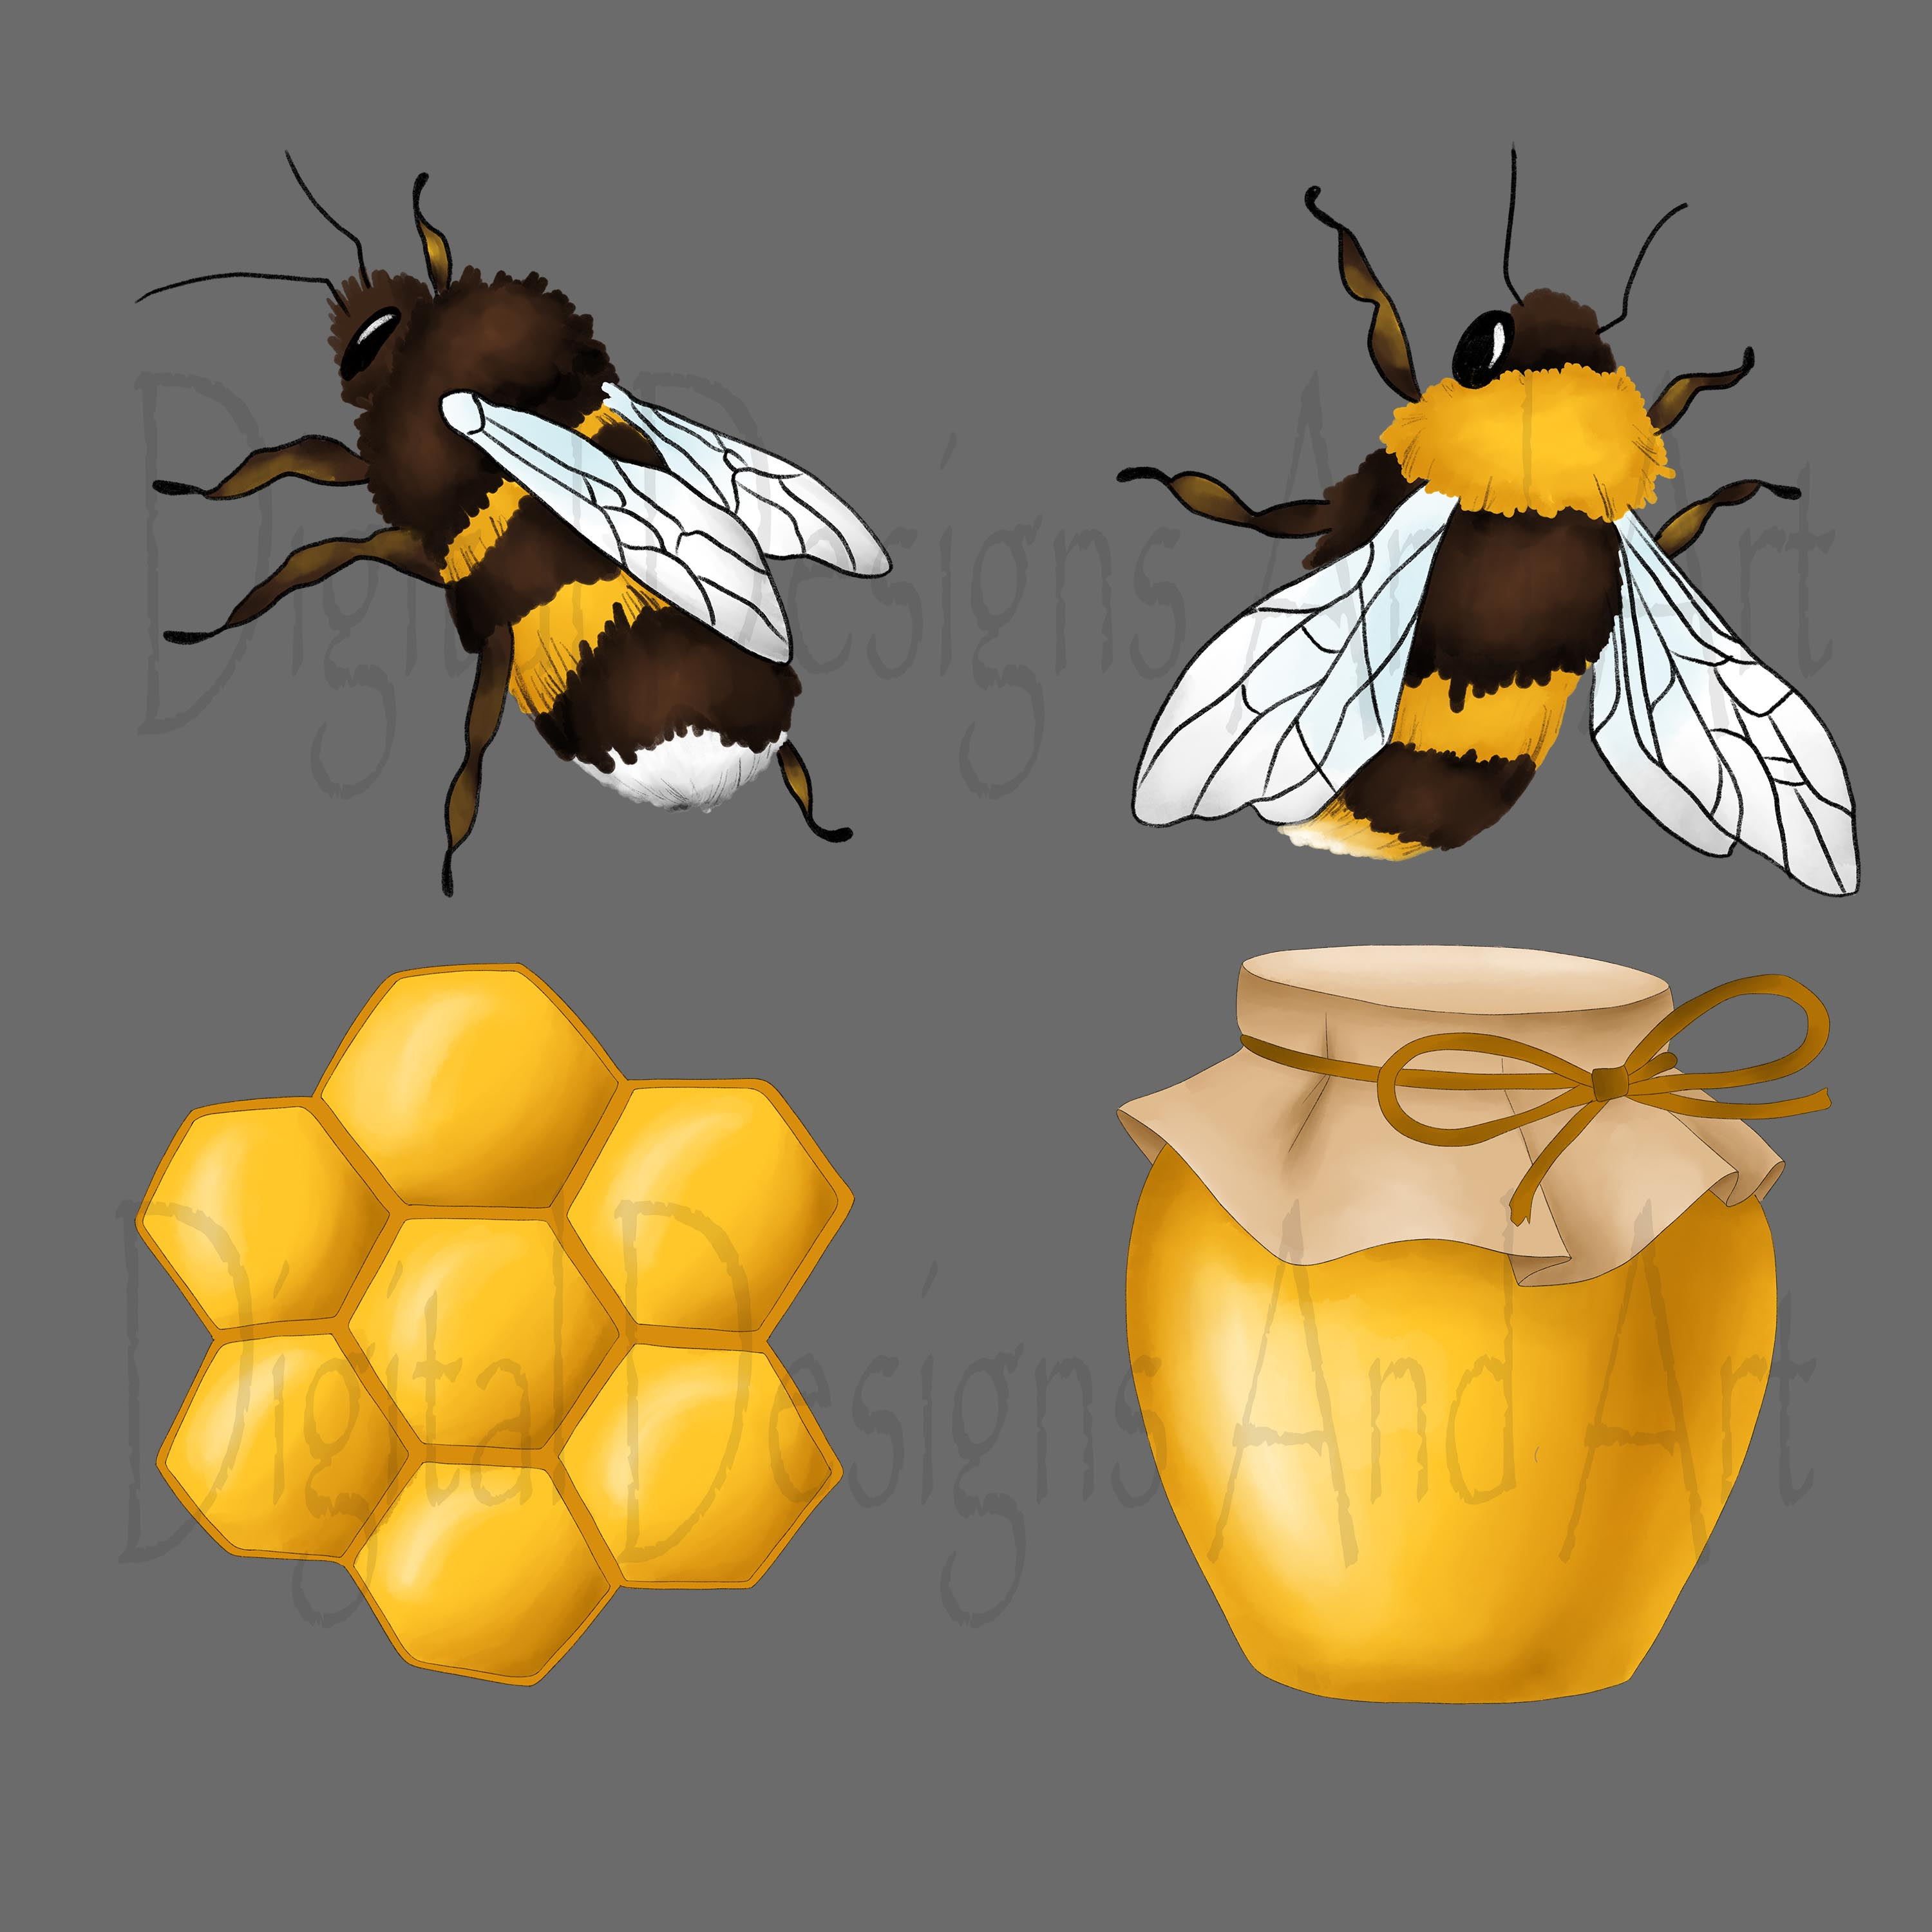 Honey bee clipart example image 7